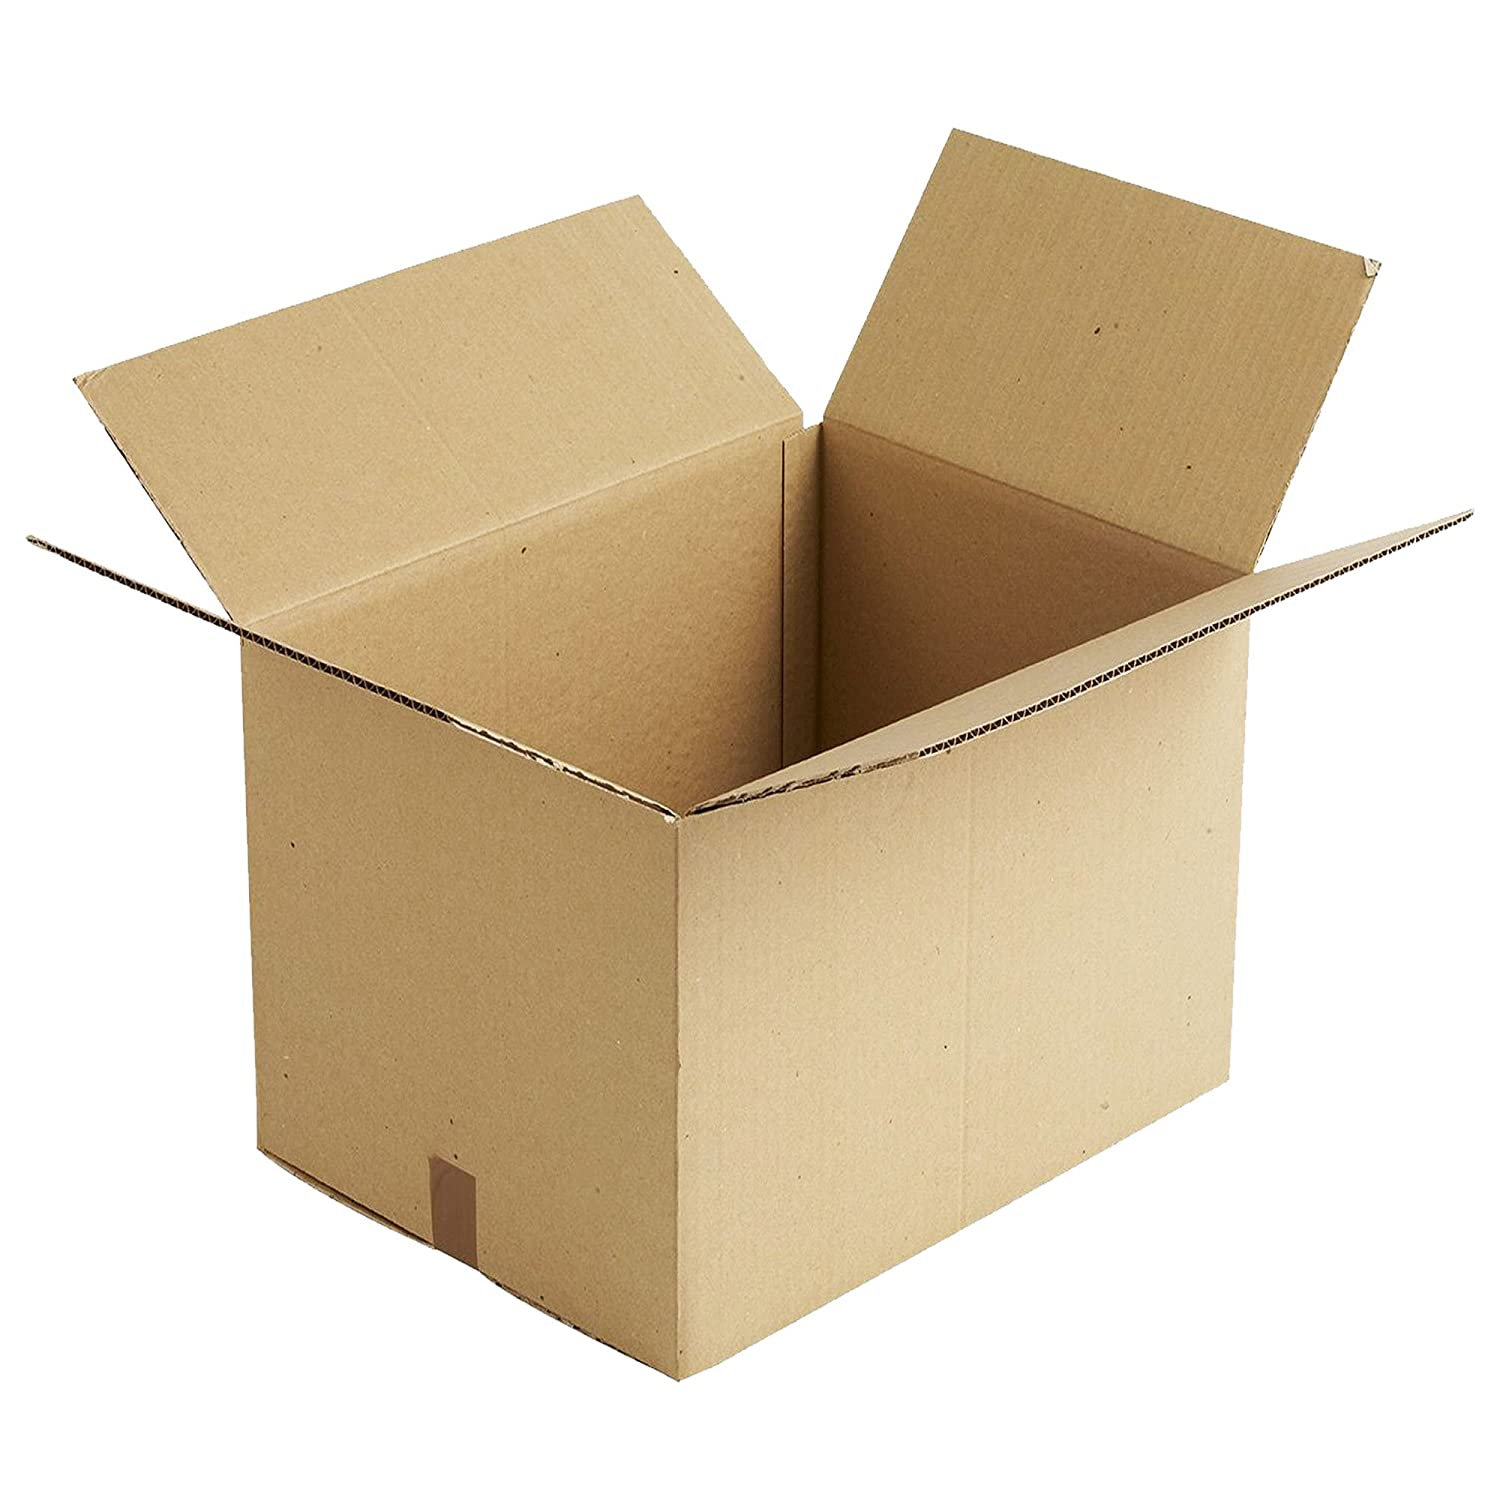 20 LARGE Cardboard Moving Boxes - House Removal Packing box - SPECIAL OFFER CORRUGATED CARTON BOX STAR SUPPLIES